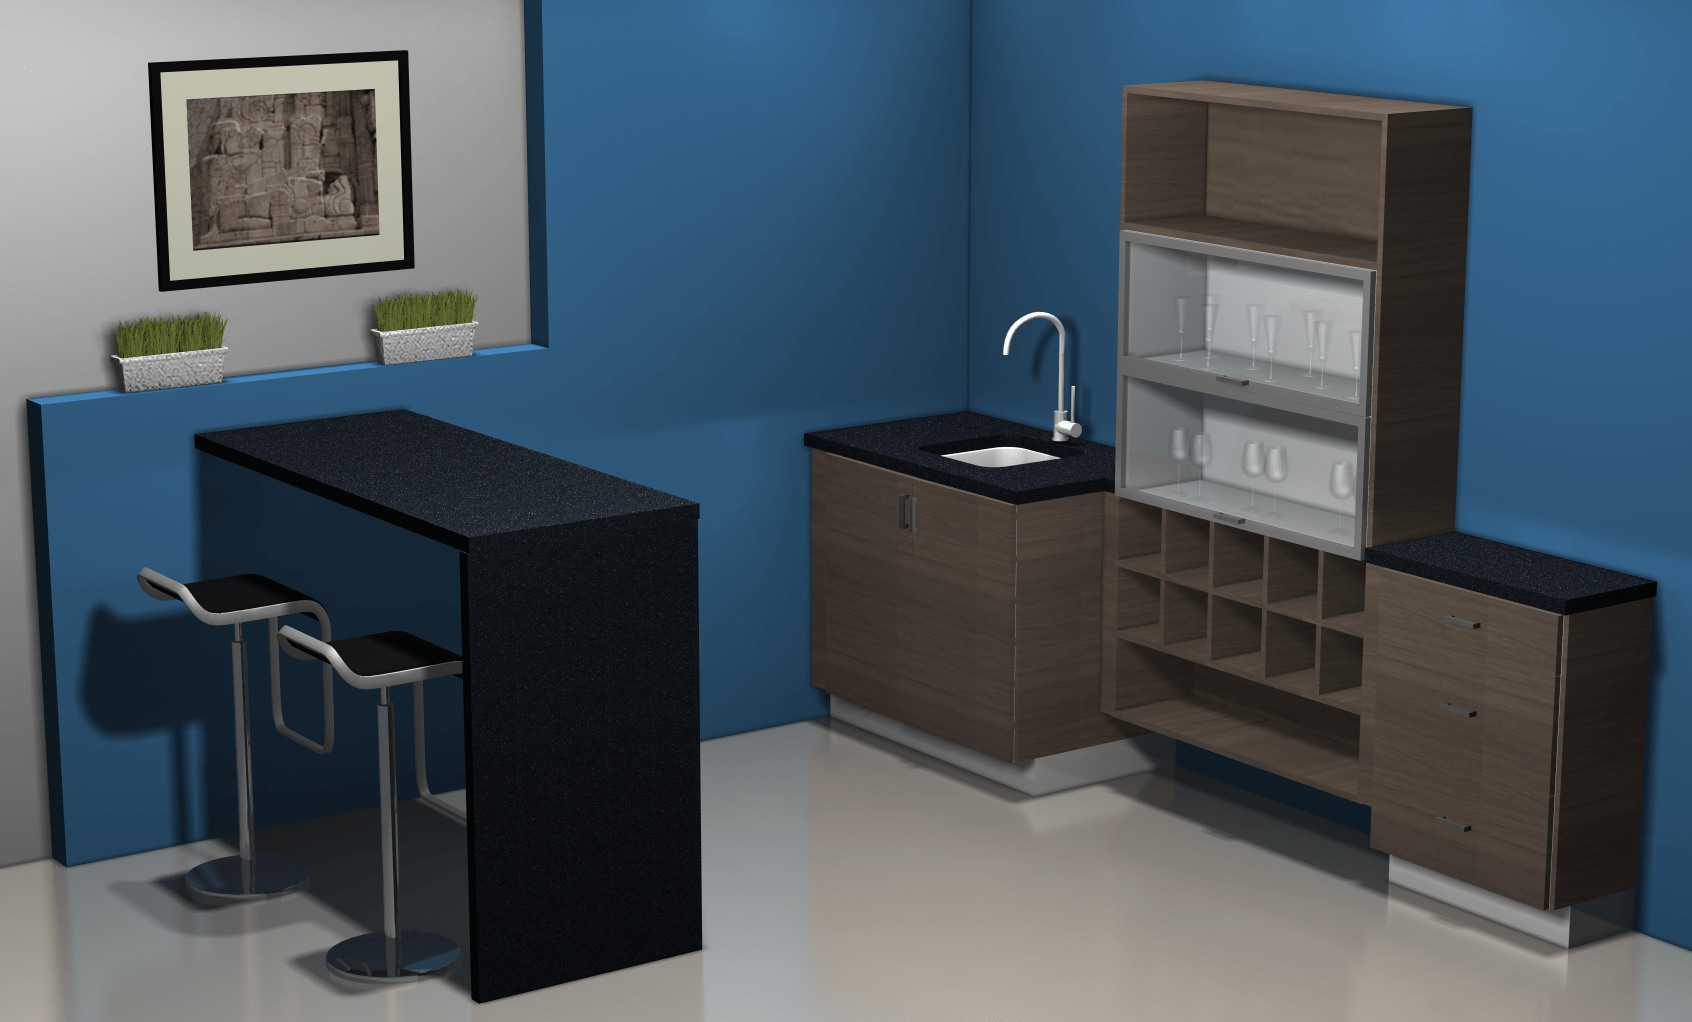 ikea kitchen bar corner sinks for design ideas a area with cabinets